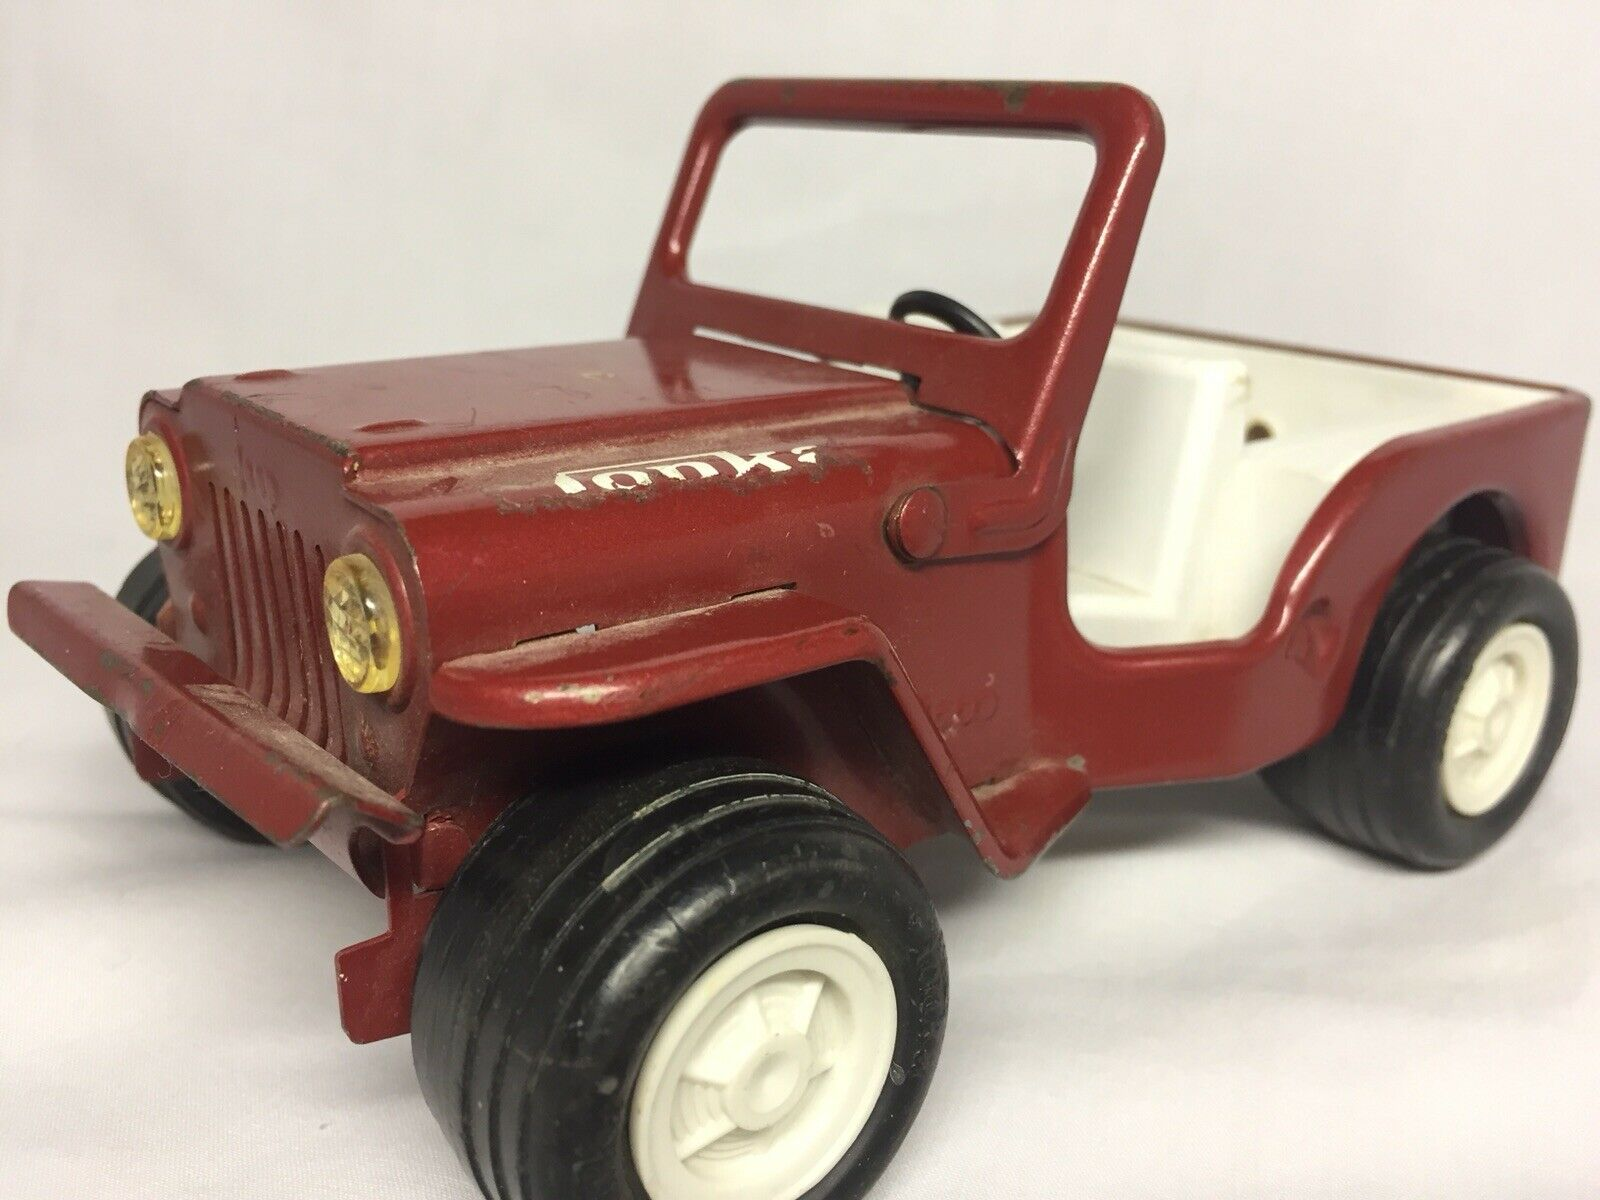 Vintage 1966 Tonka Toy Jeep rot Pressed Metal Rollong Car Folding Windshield